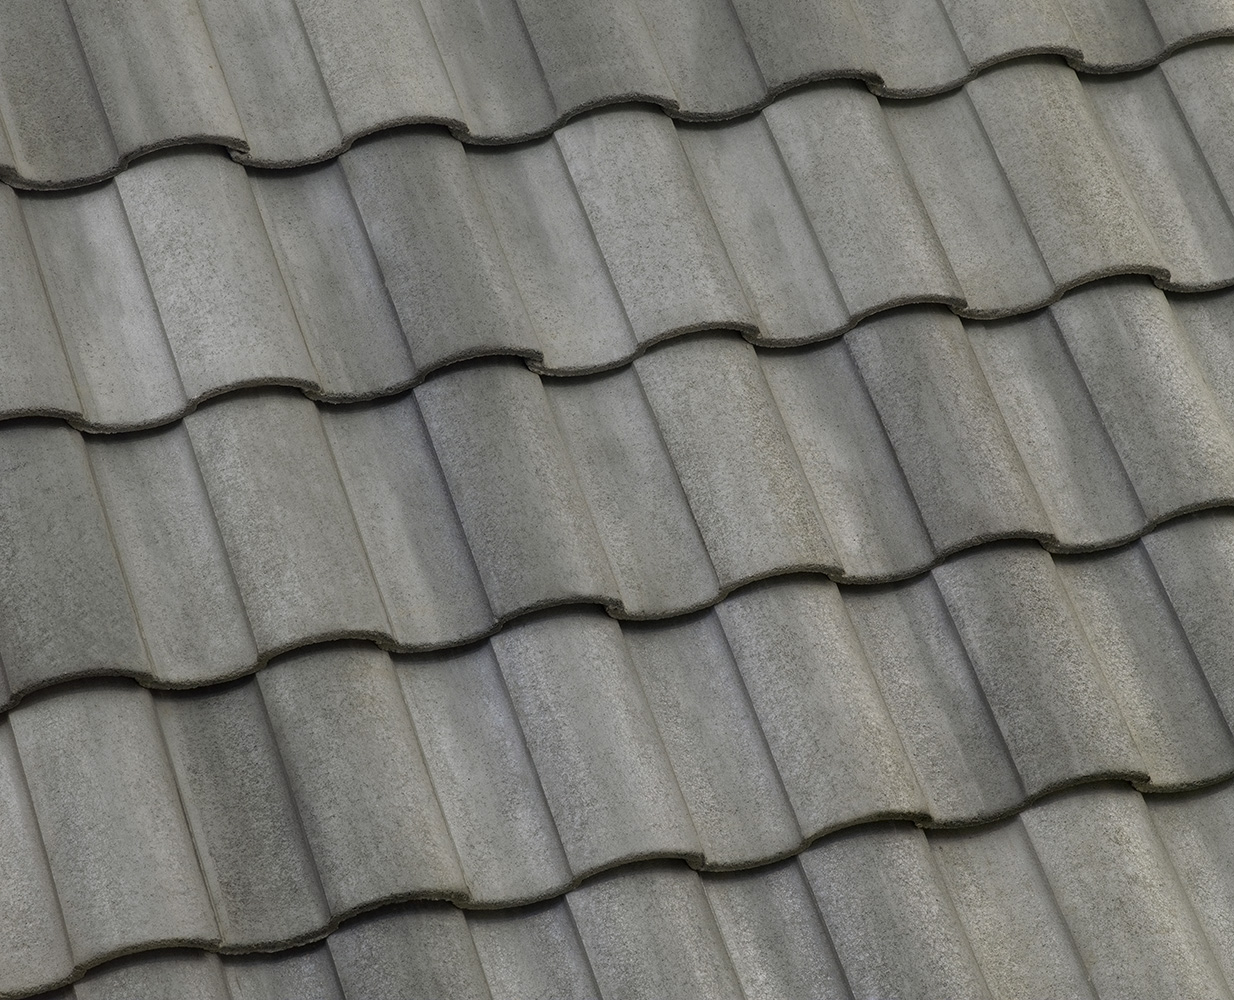 3697 eagle roofing download hi res tile image ppazfo